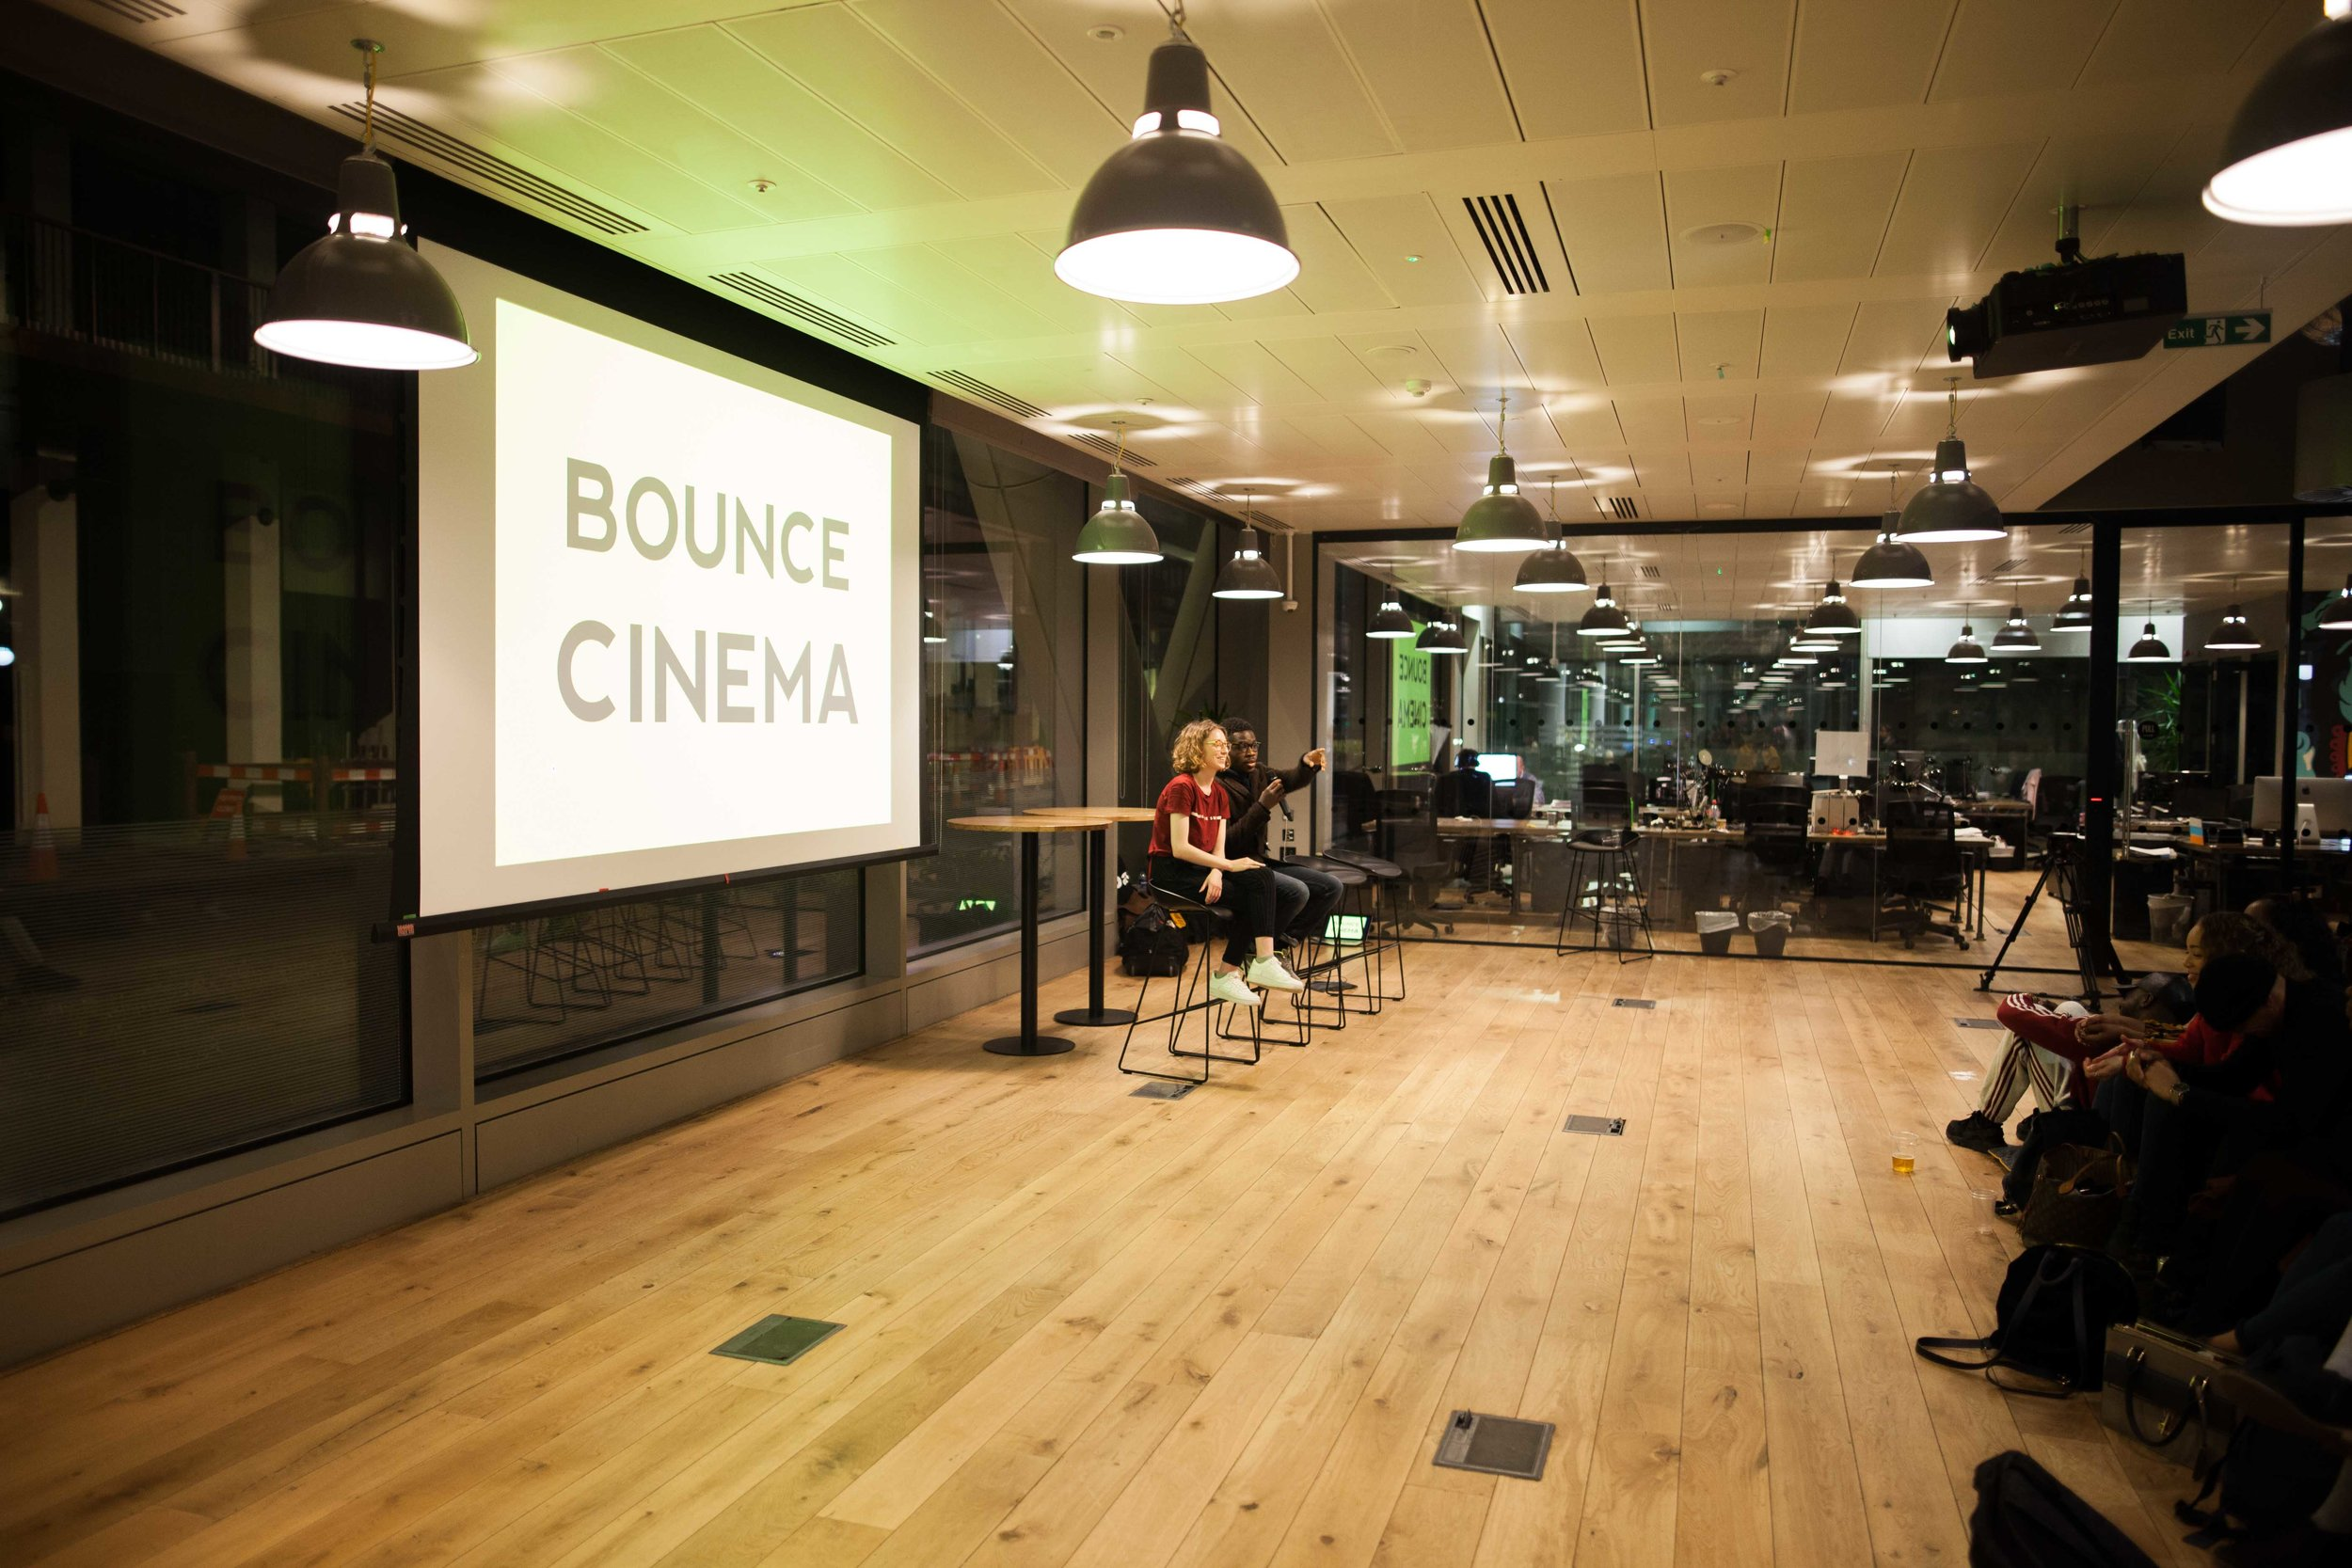 Bounce Cinema20.jpg